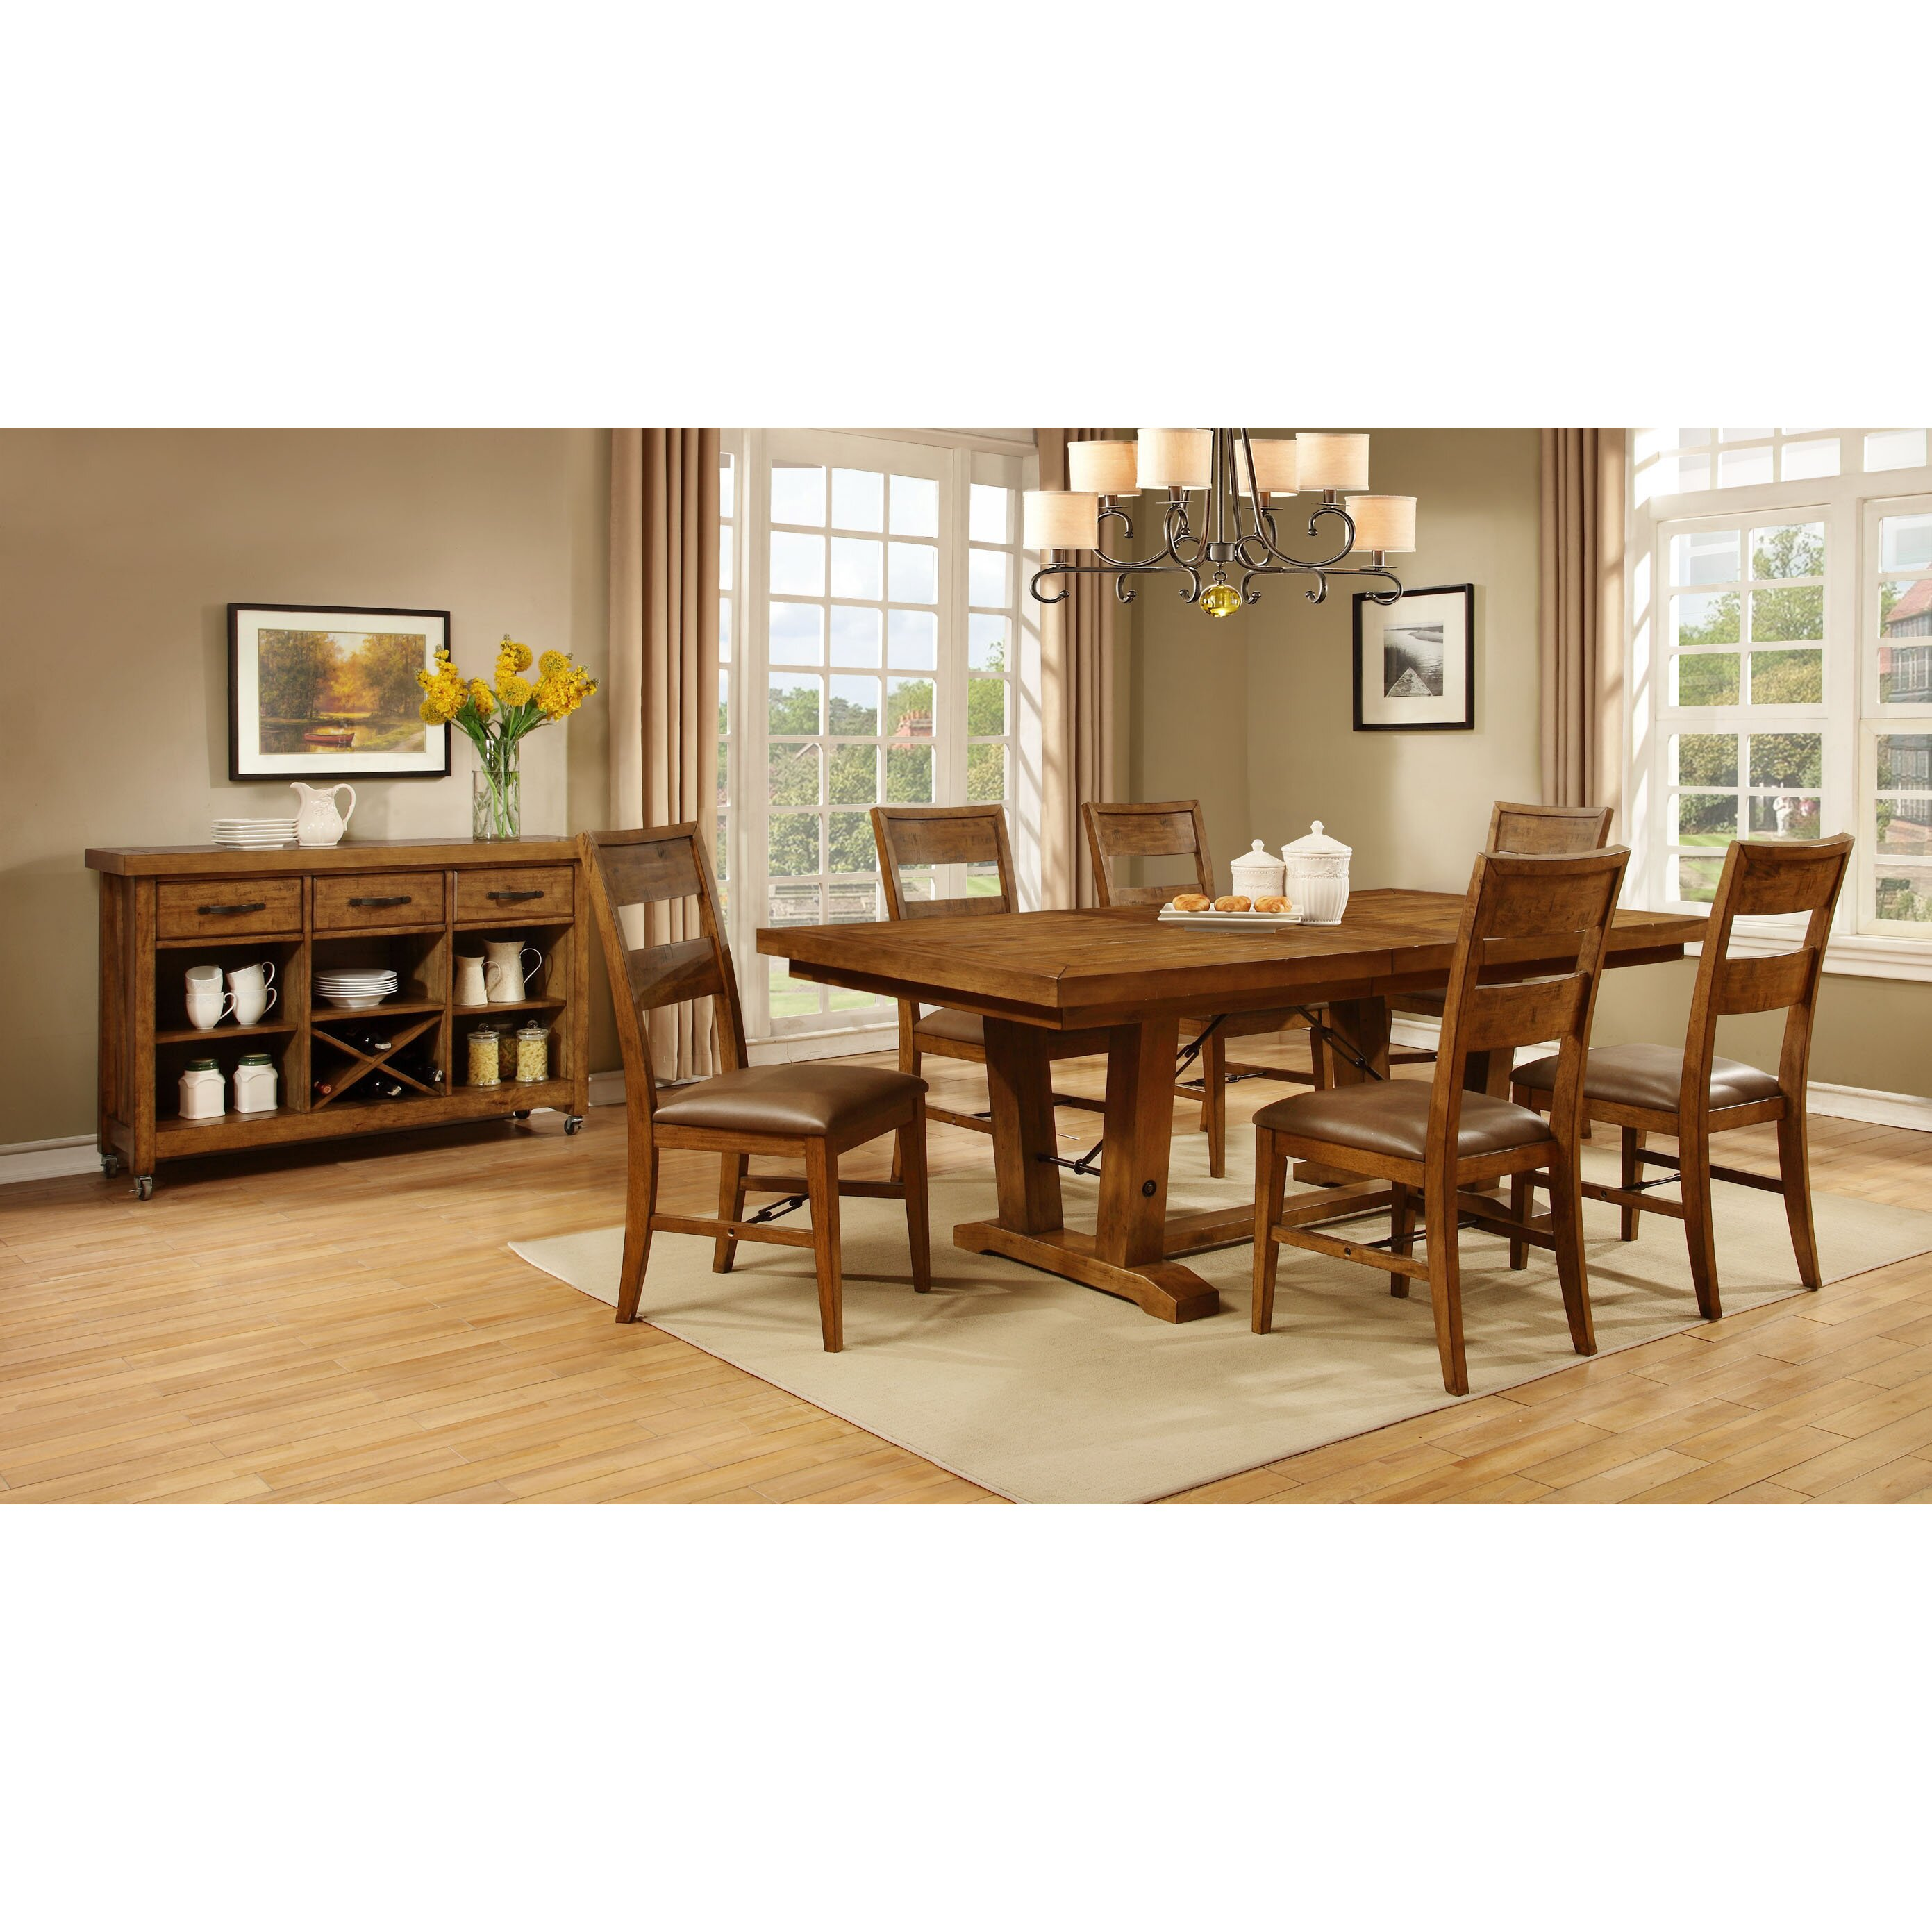 Avalon furniture milling road 7 piece dining set reviews for Furniture 7 credit reviews